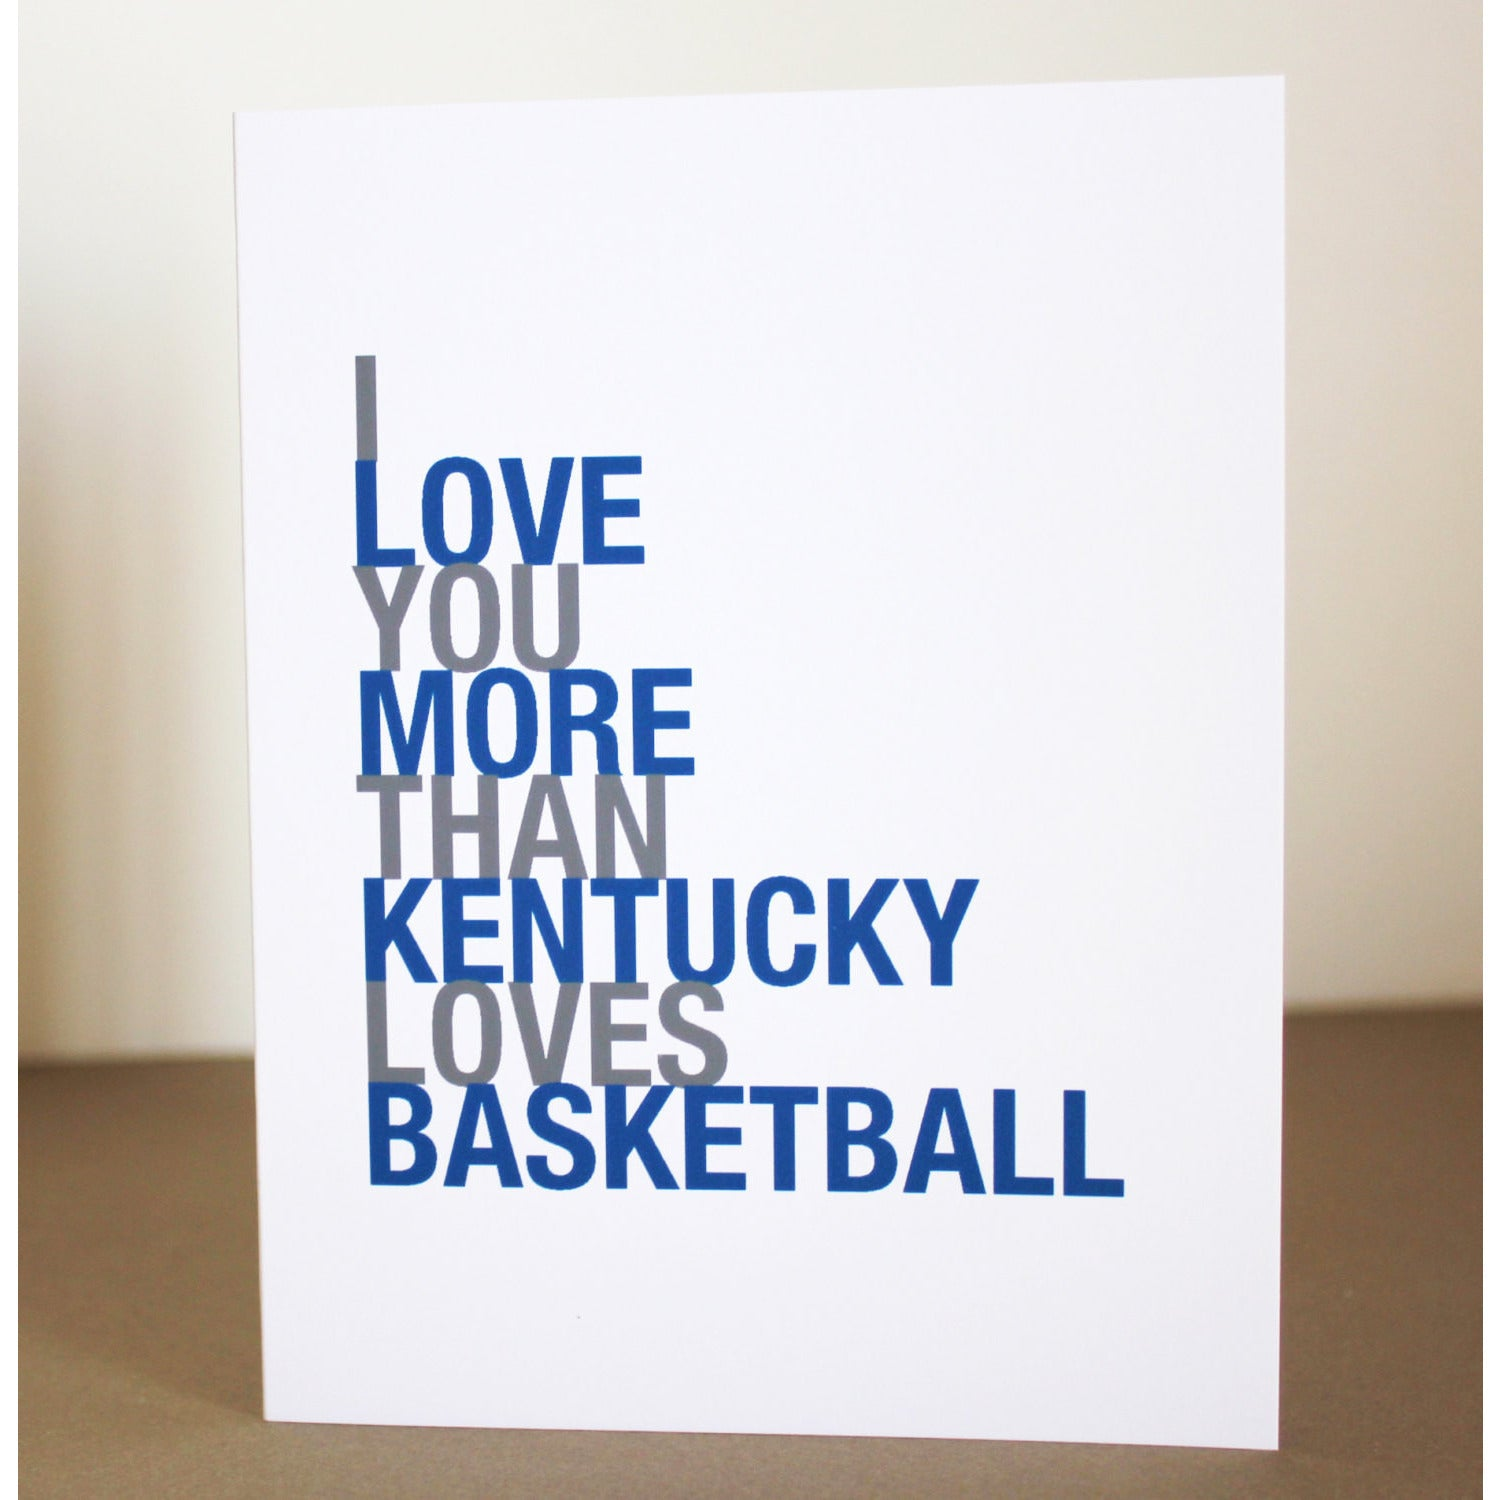 I Love You More Than Kentucky Loves Basketball greeting card  - Shop Online